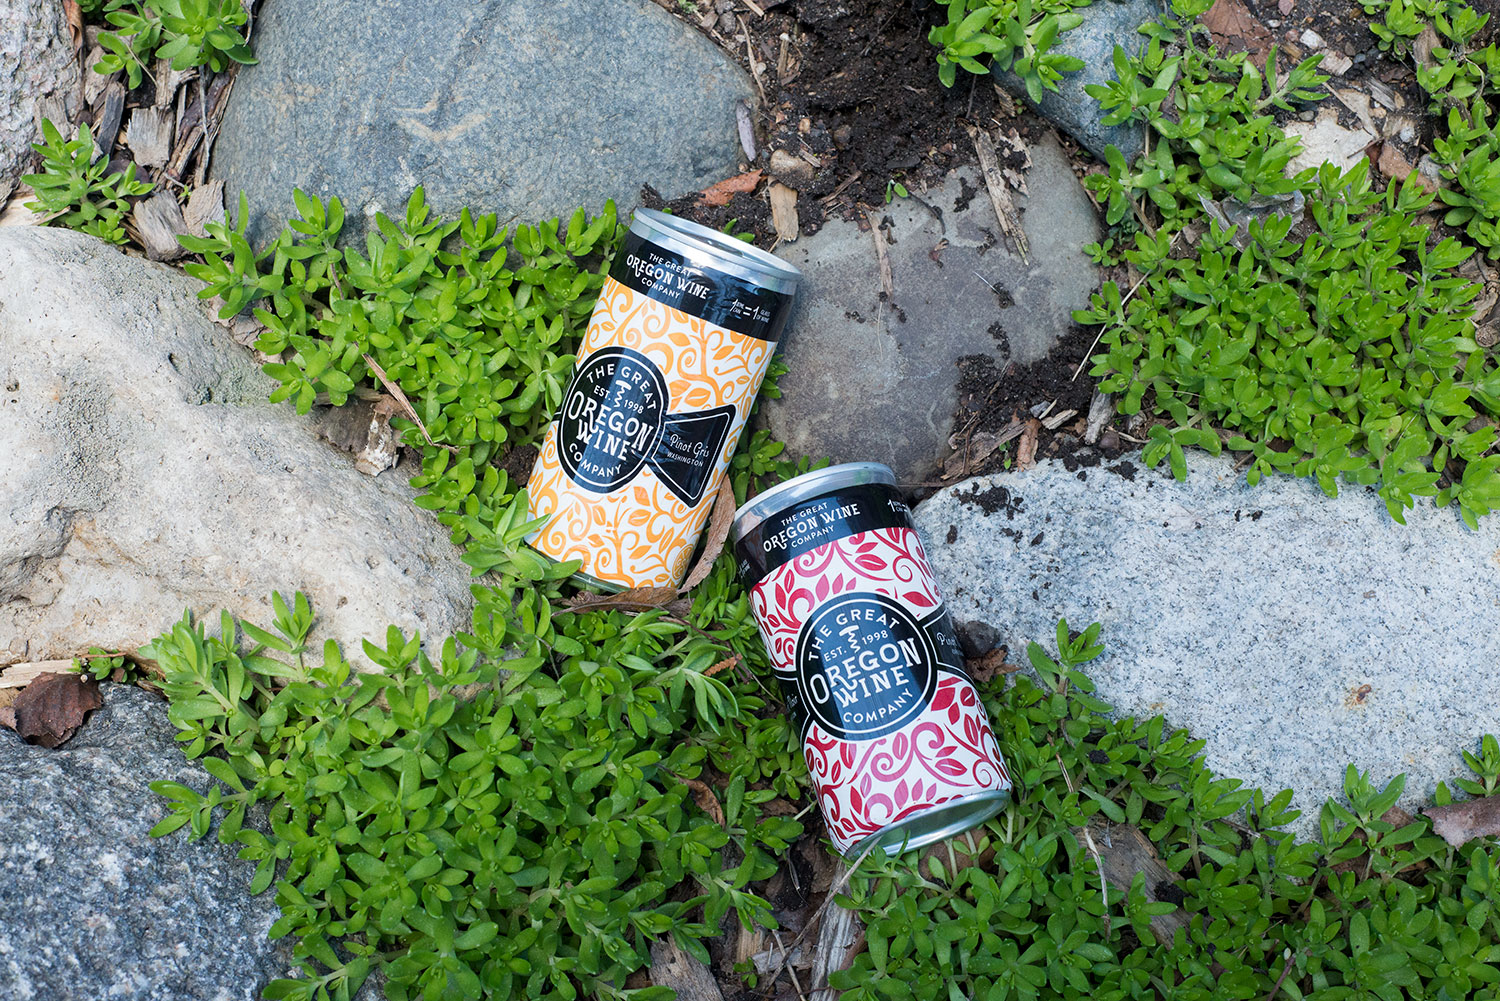 the great oregon wine company canned wine